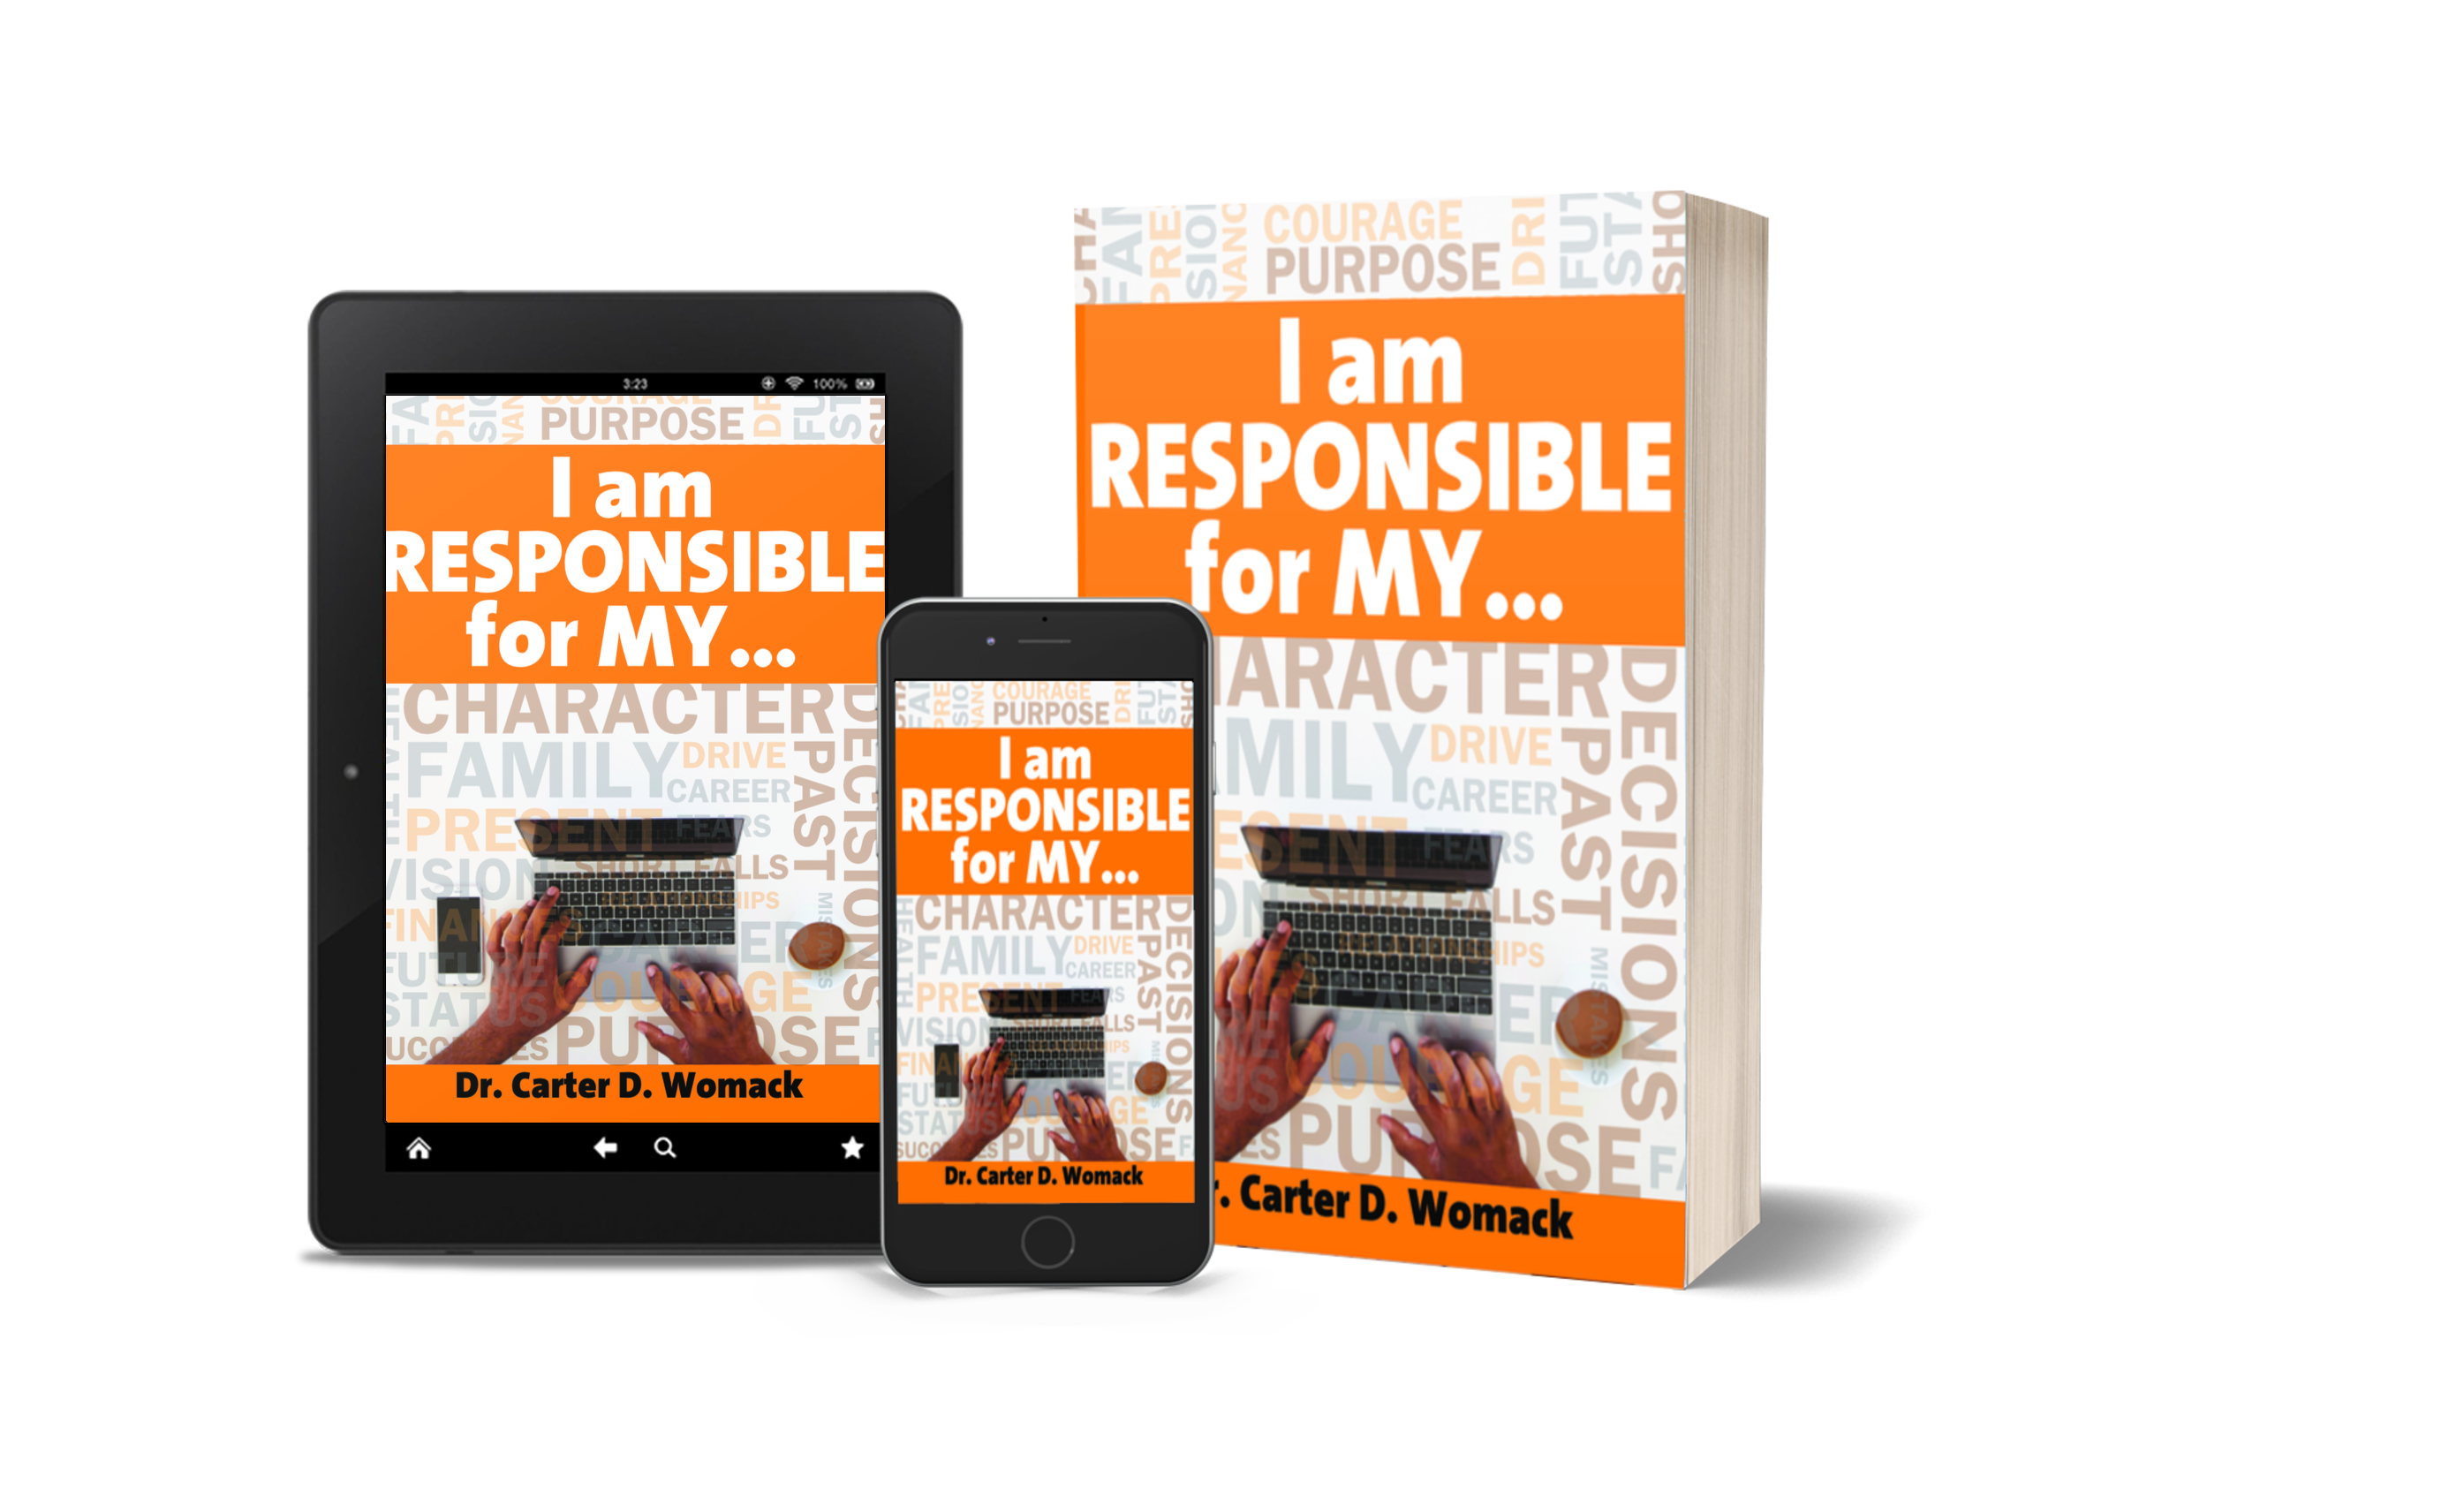 I am Responsible for MY…